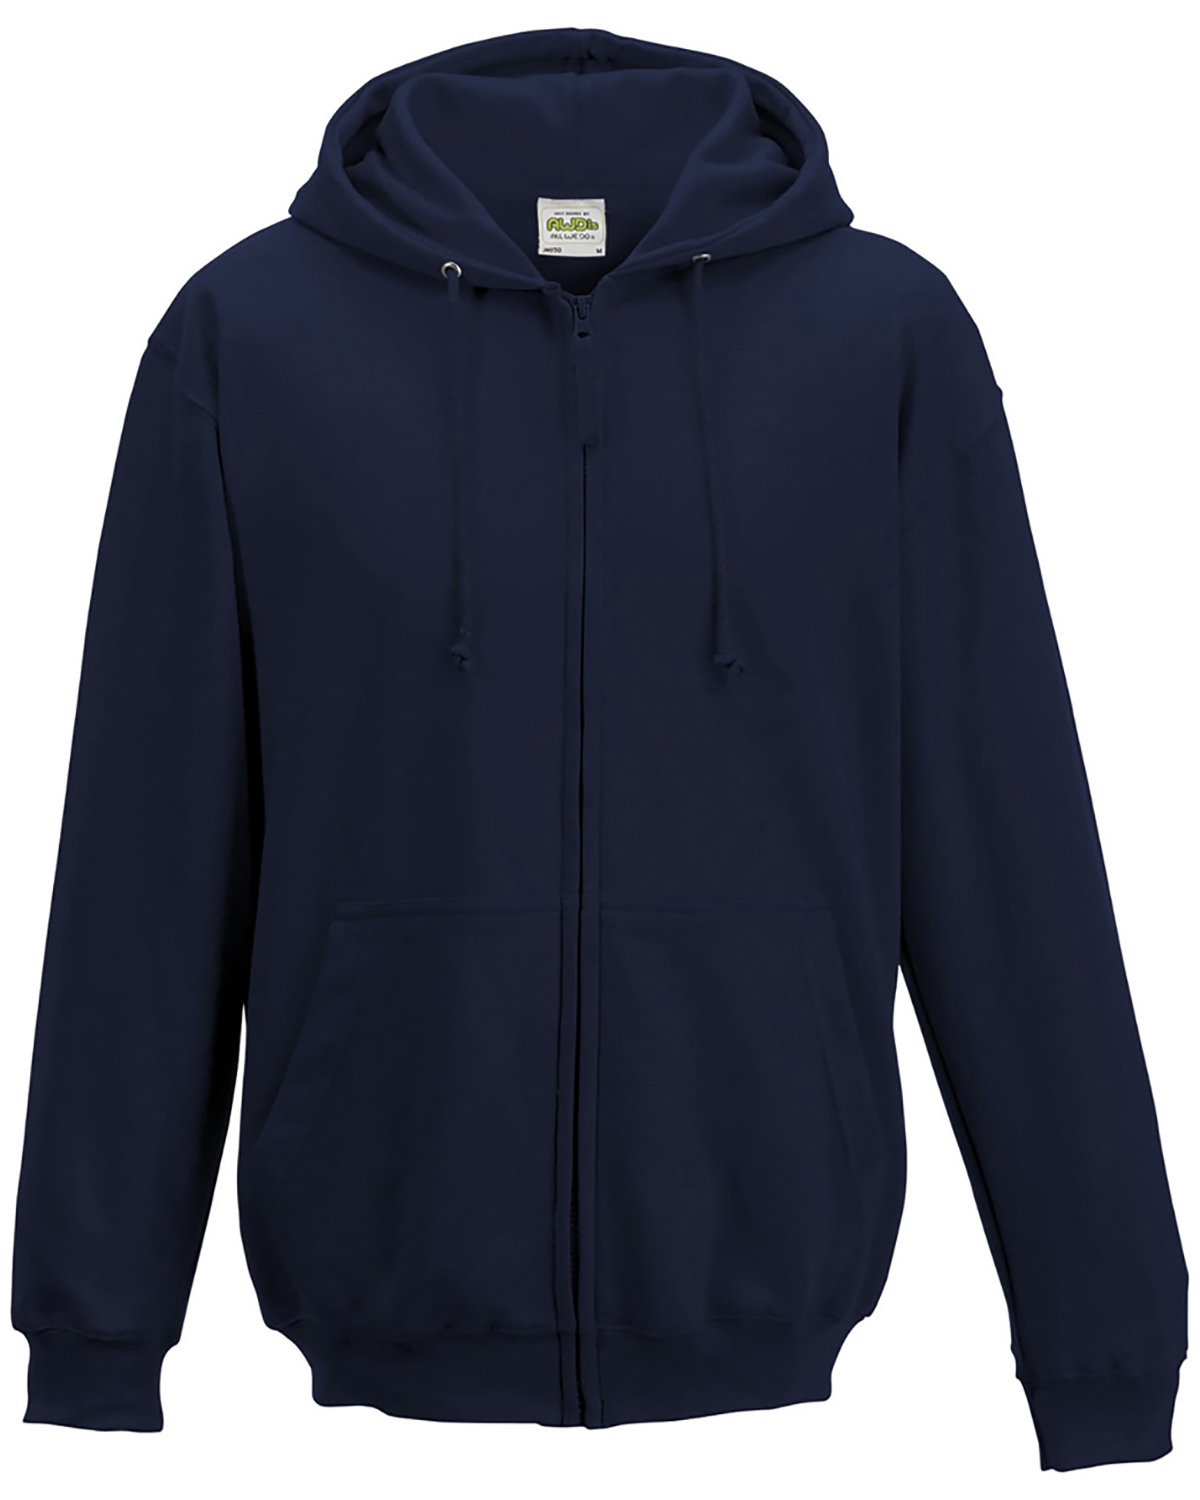 Just Hoods By AWDis Men's 80/20 Midweight College Full-Zip Hooded Sweatshirt FRENCH NAVY